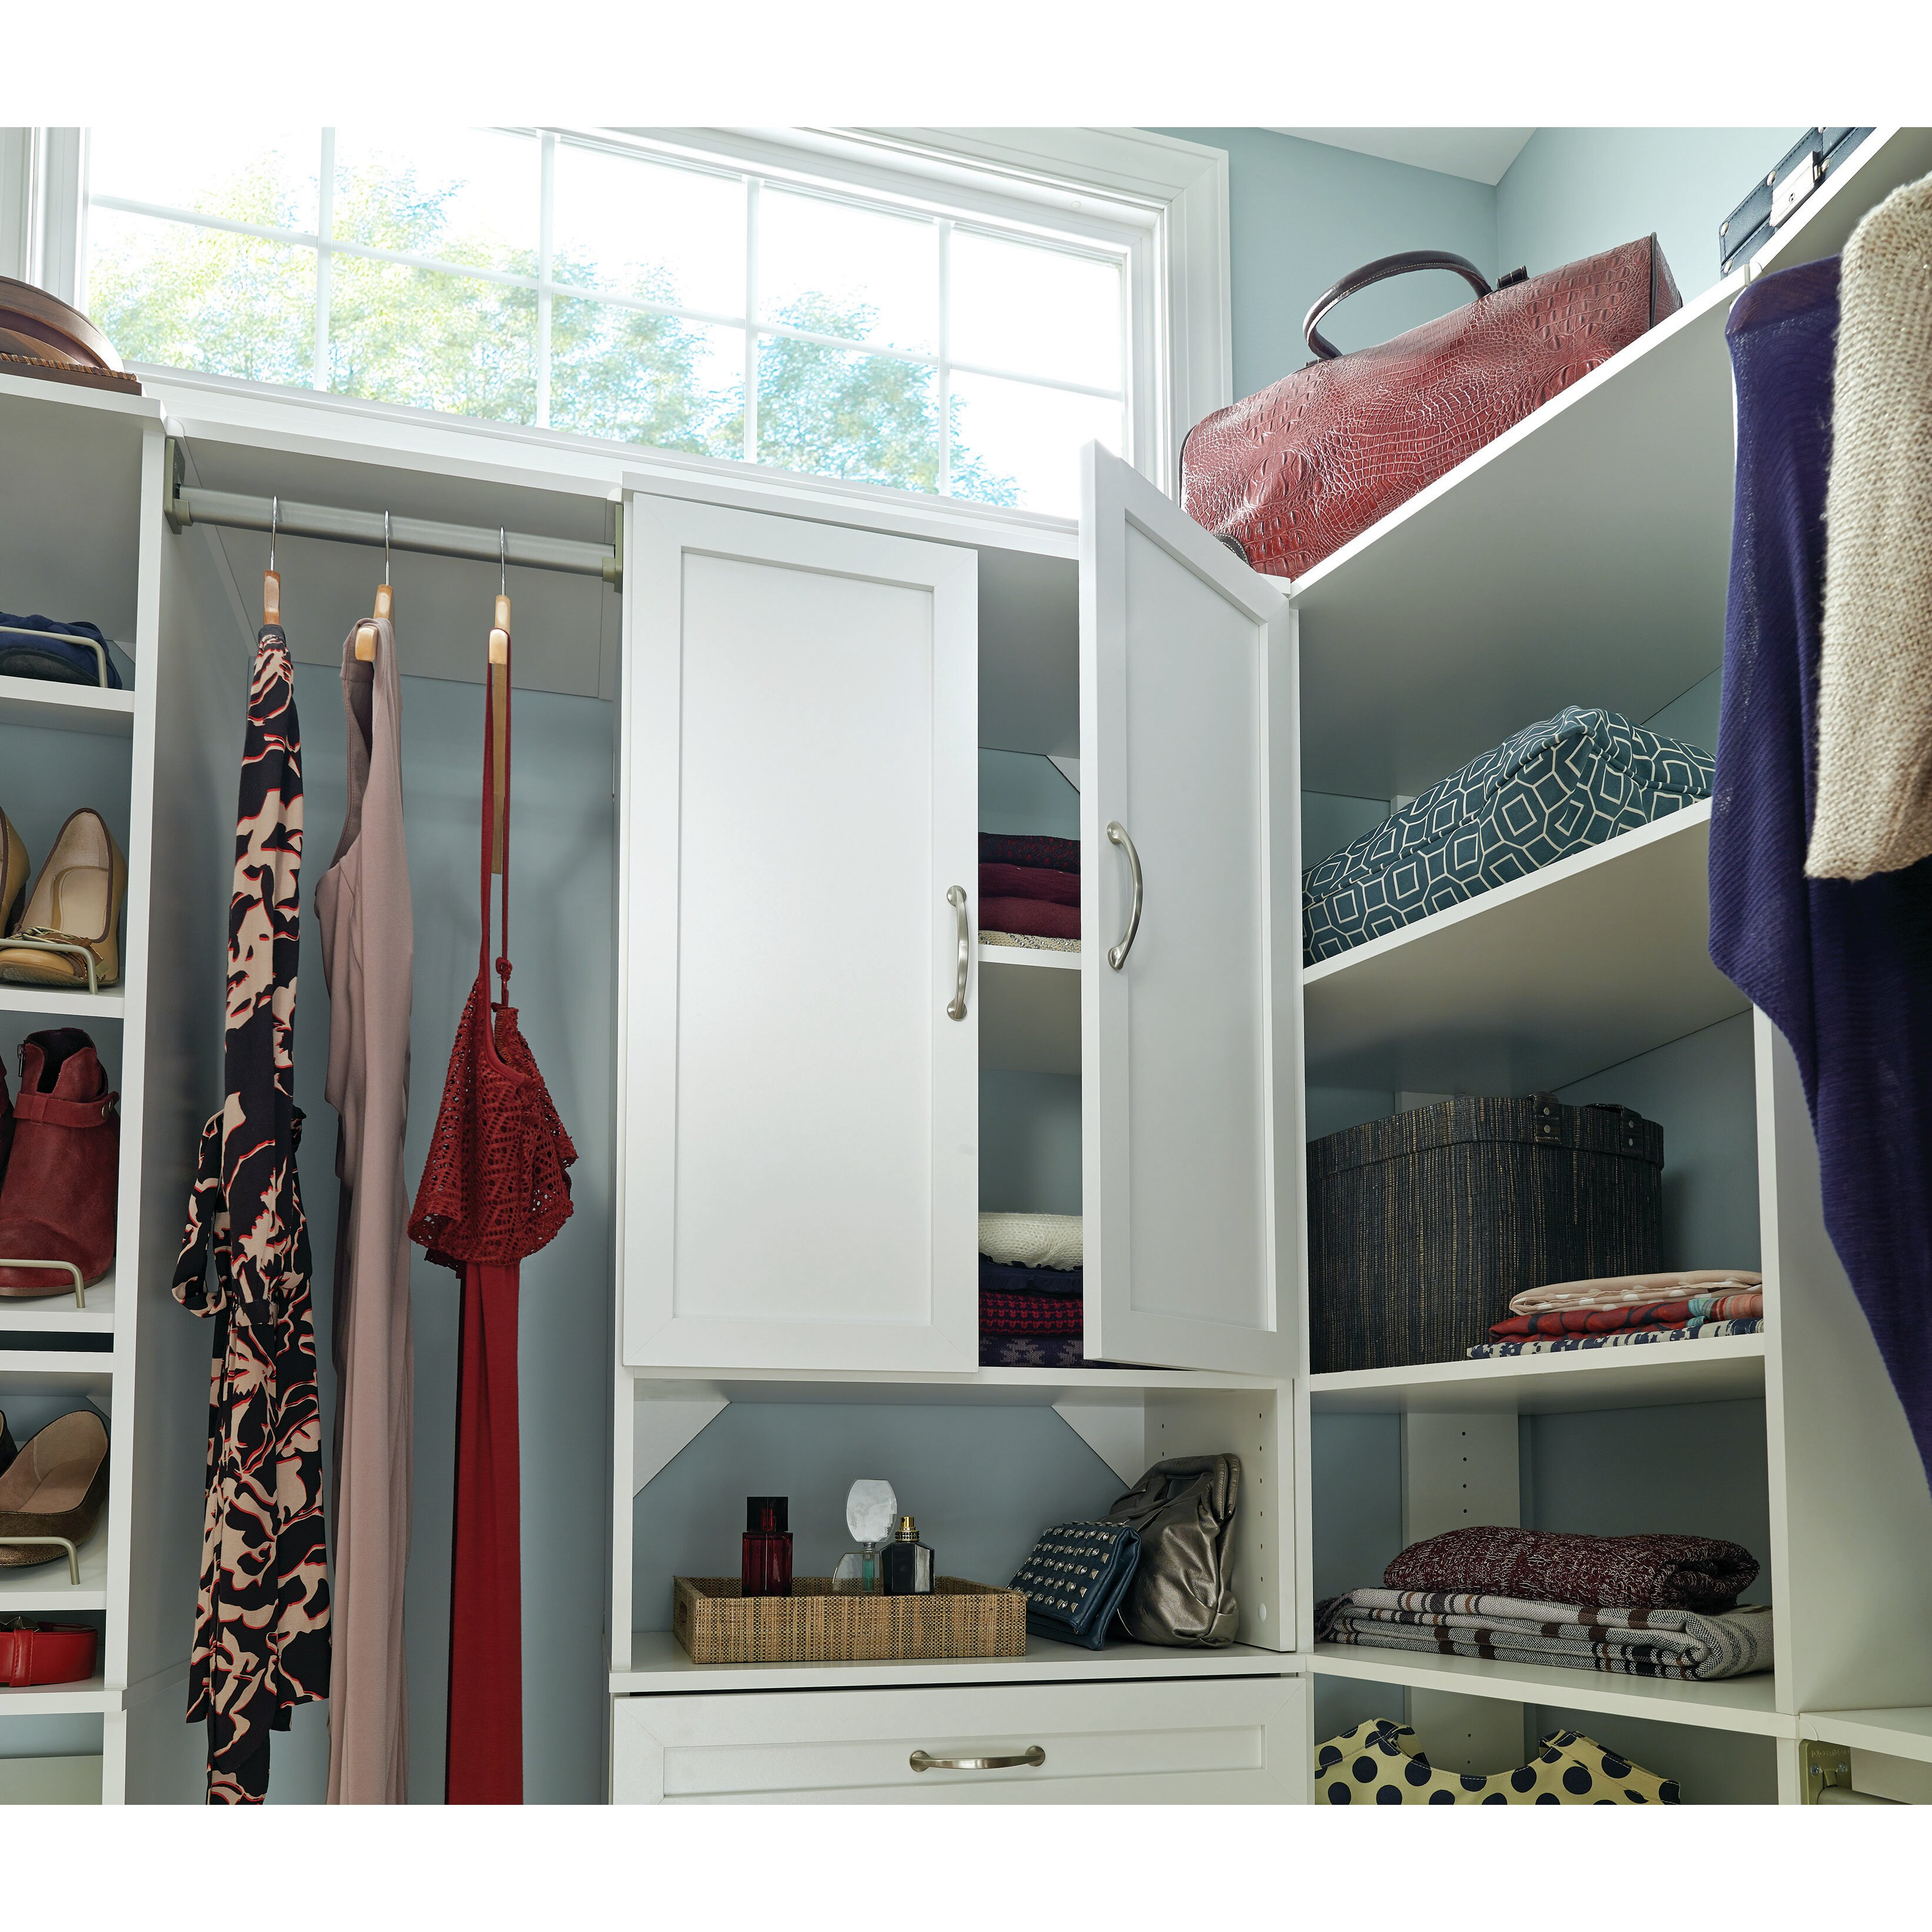 Closetmaid suitesymphony wide closet doors for One day doors and closets reviews